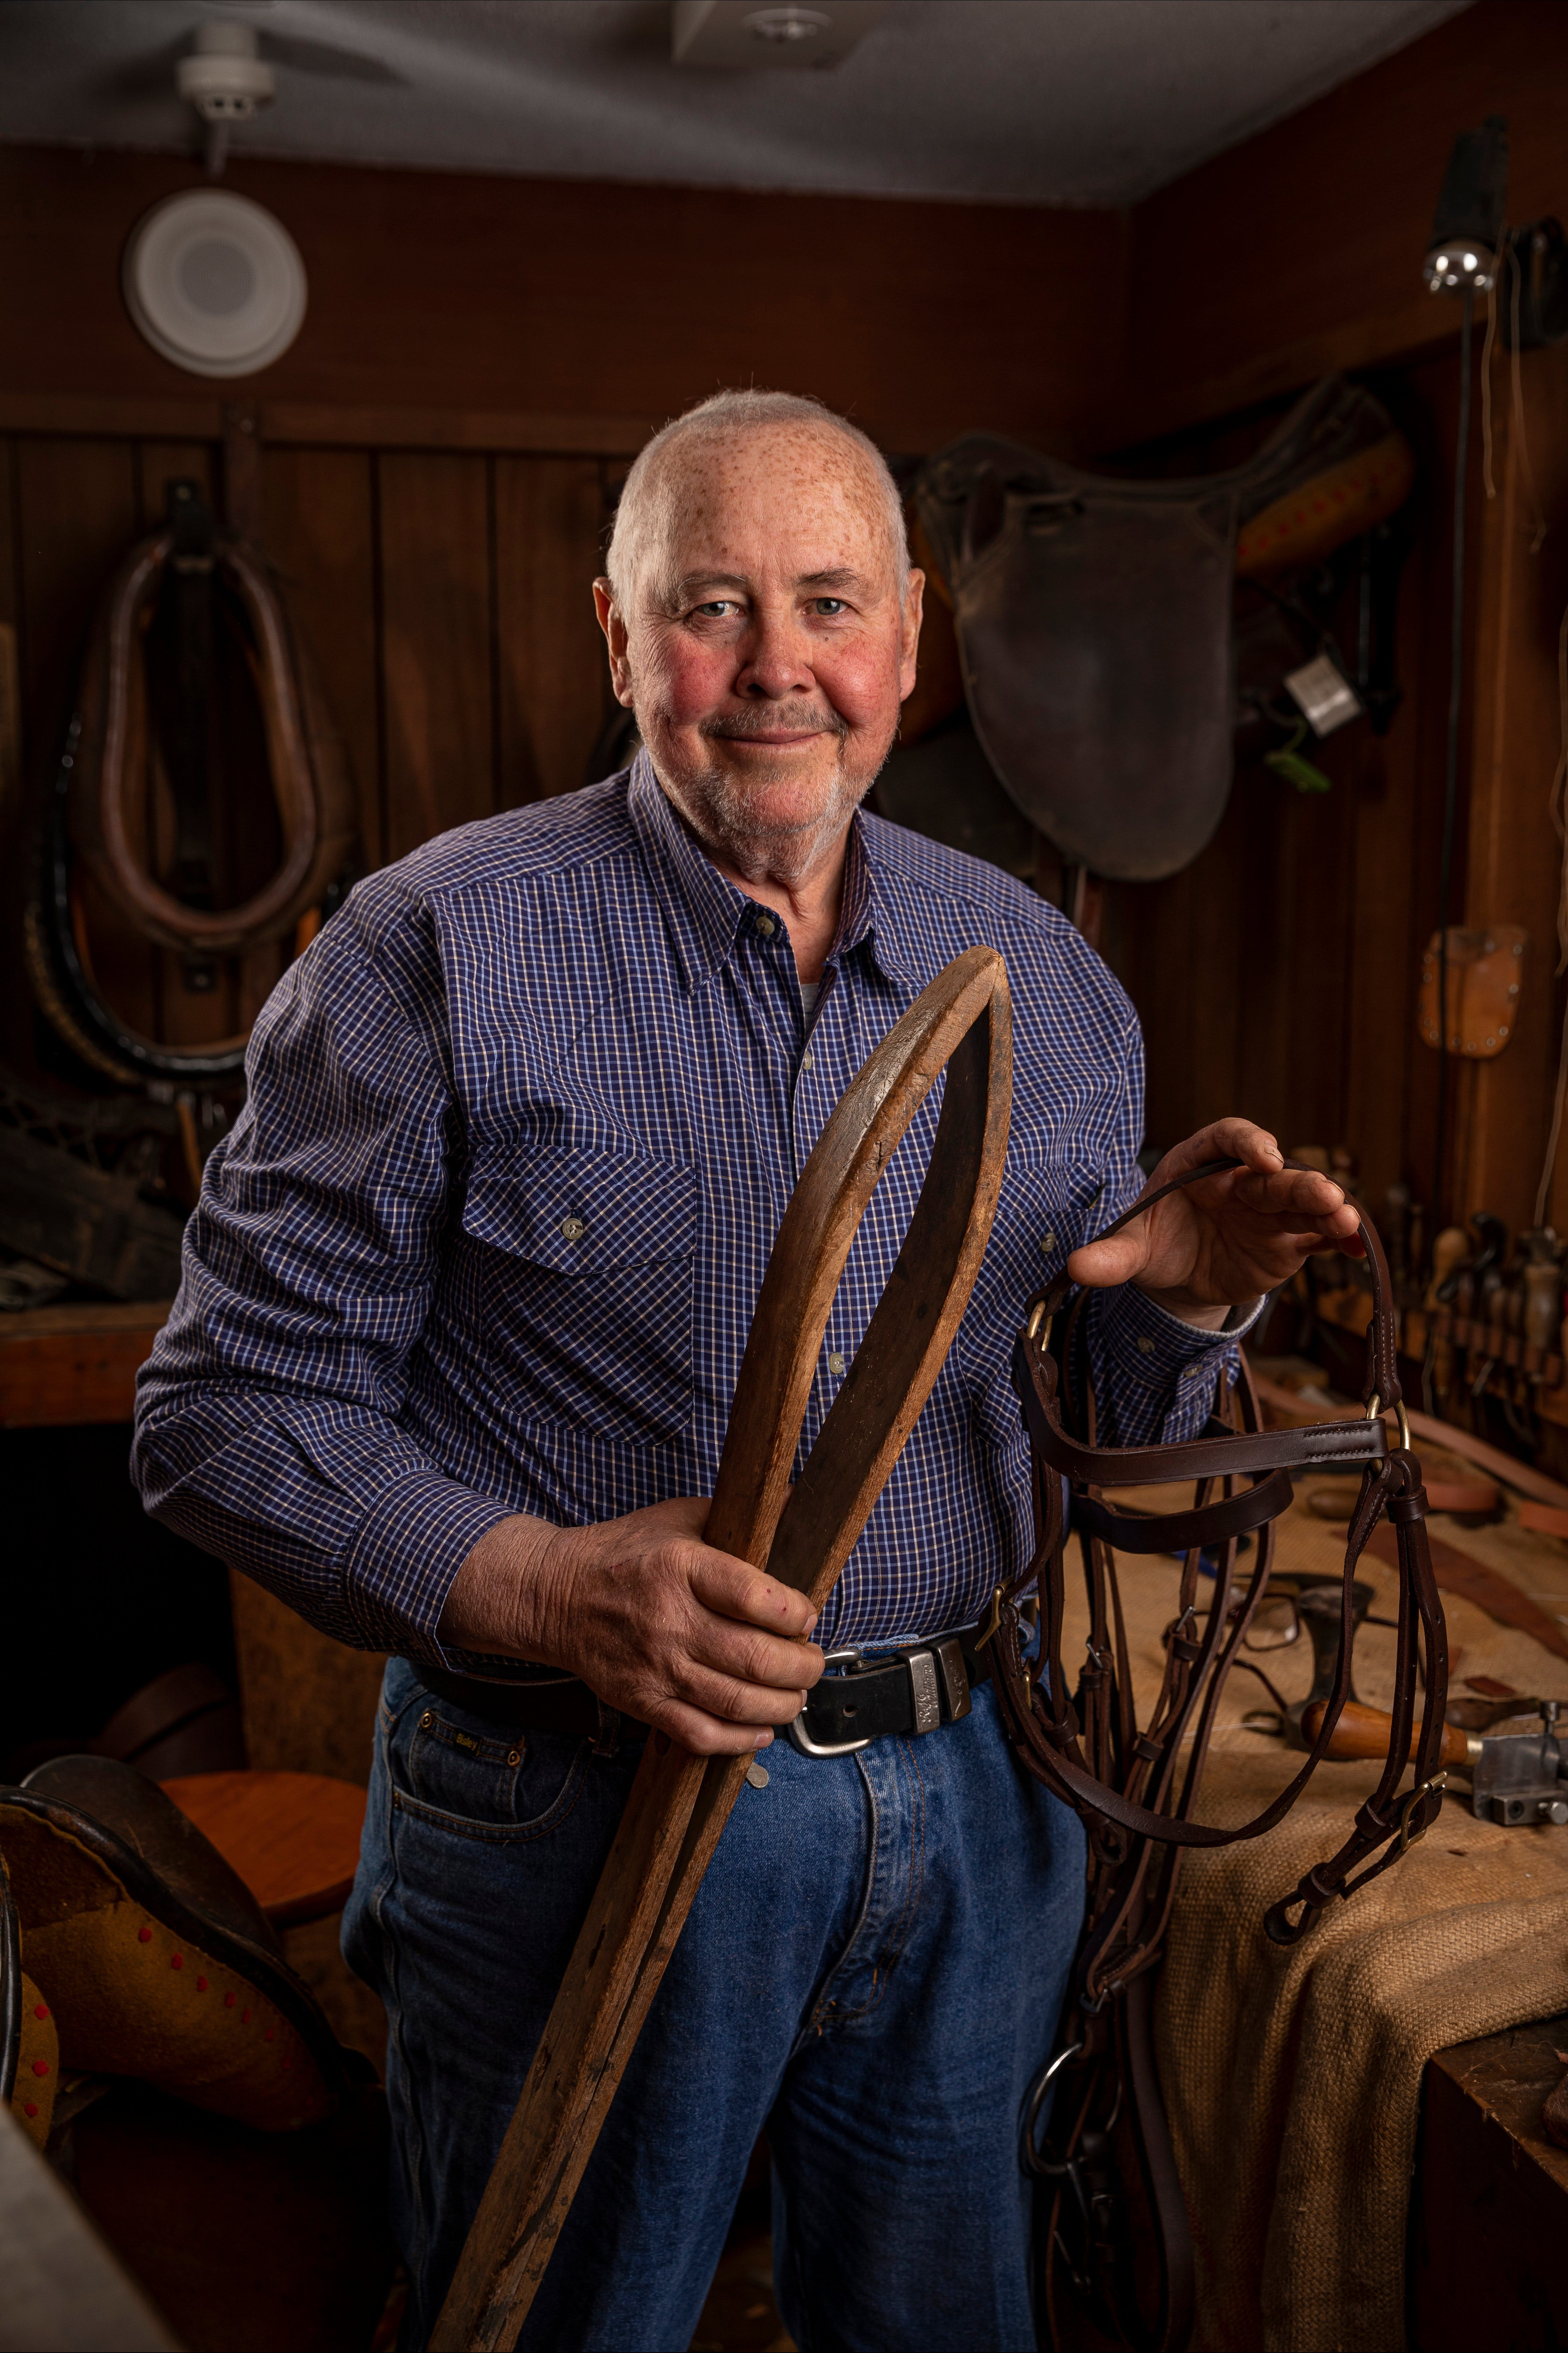 Bridle Making Workshop - New South Wales Tourism